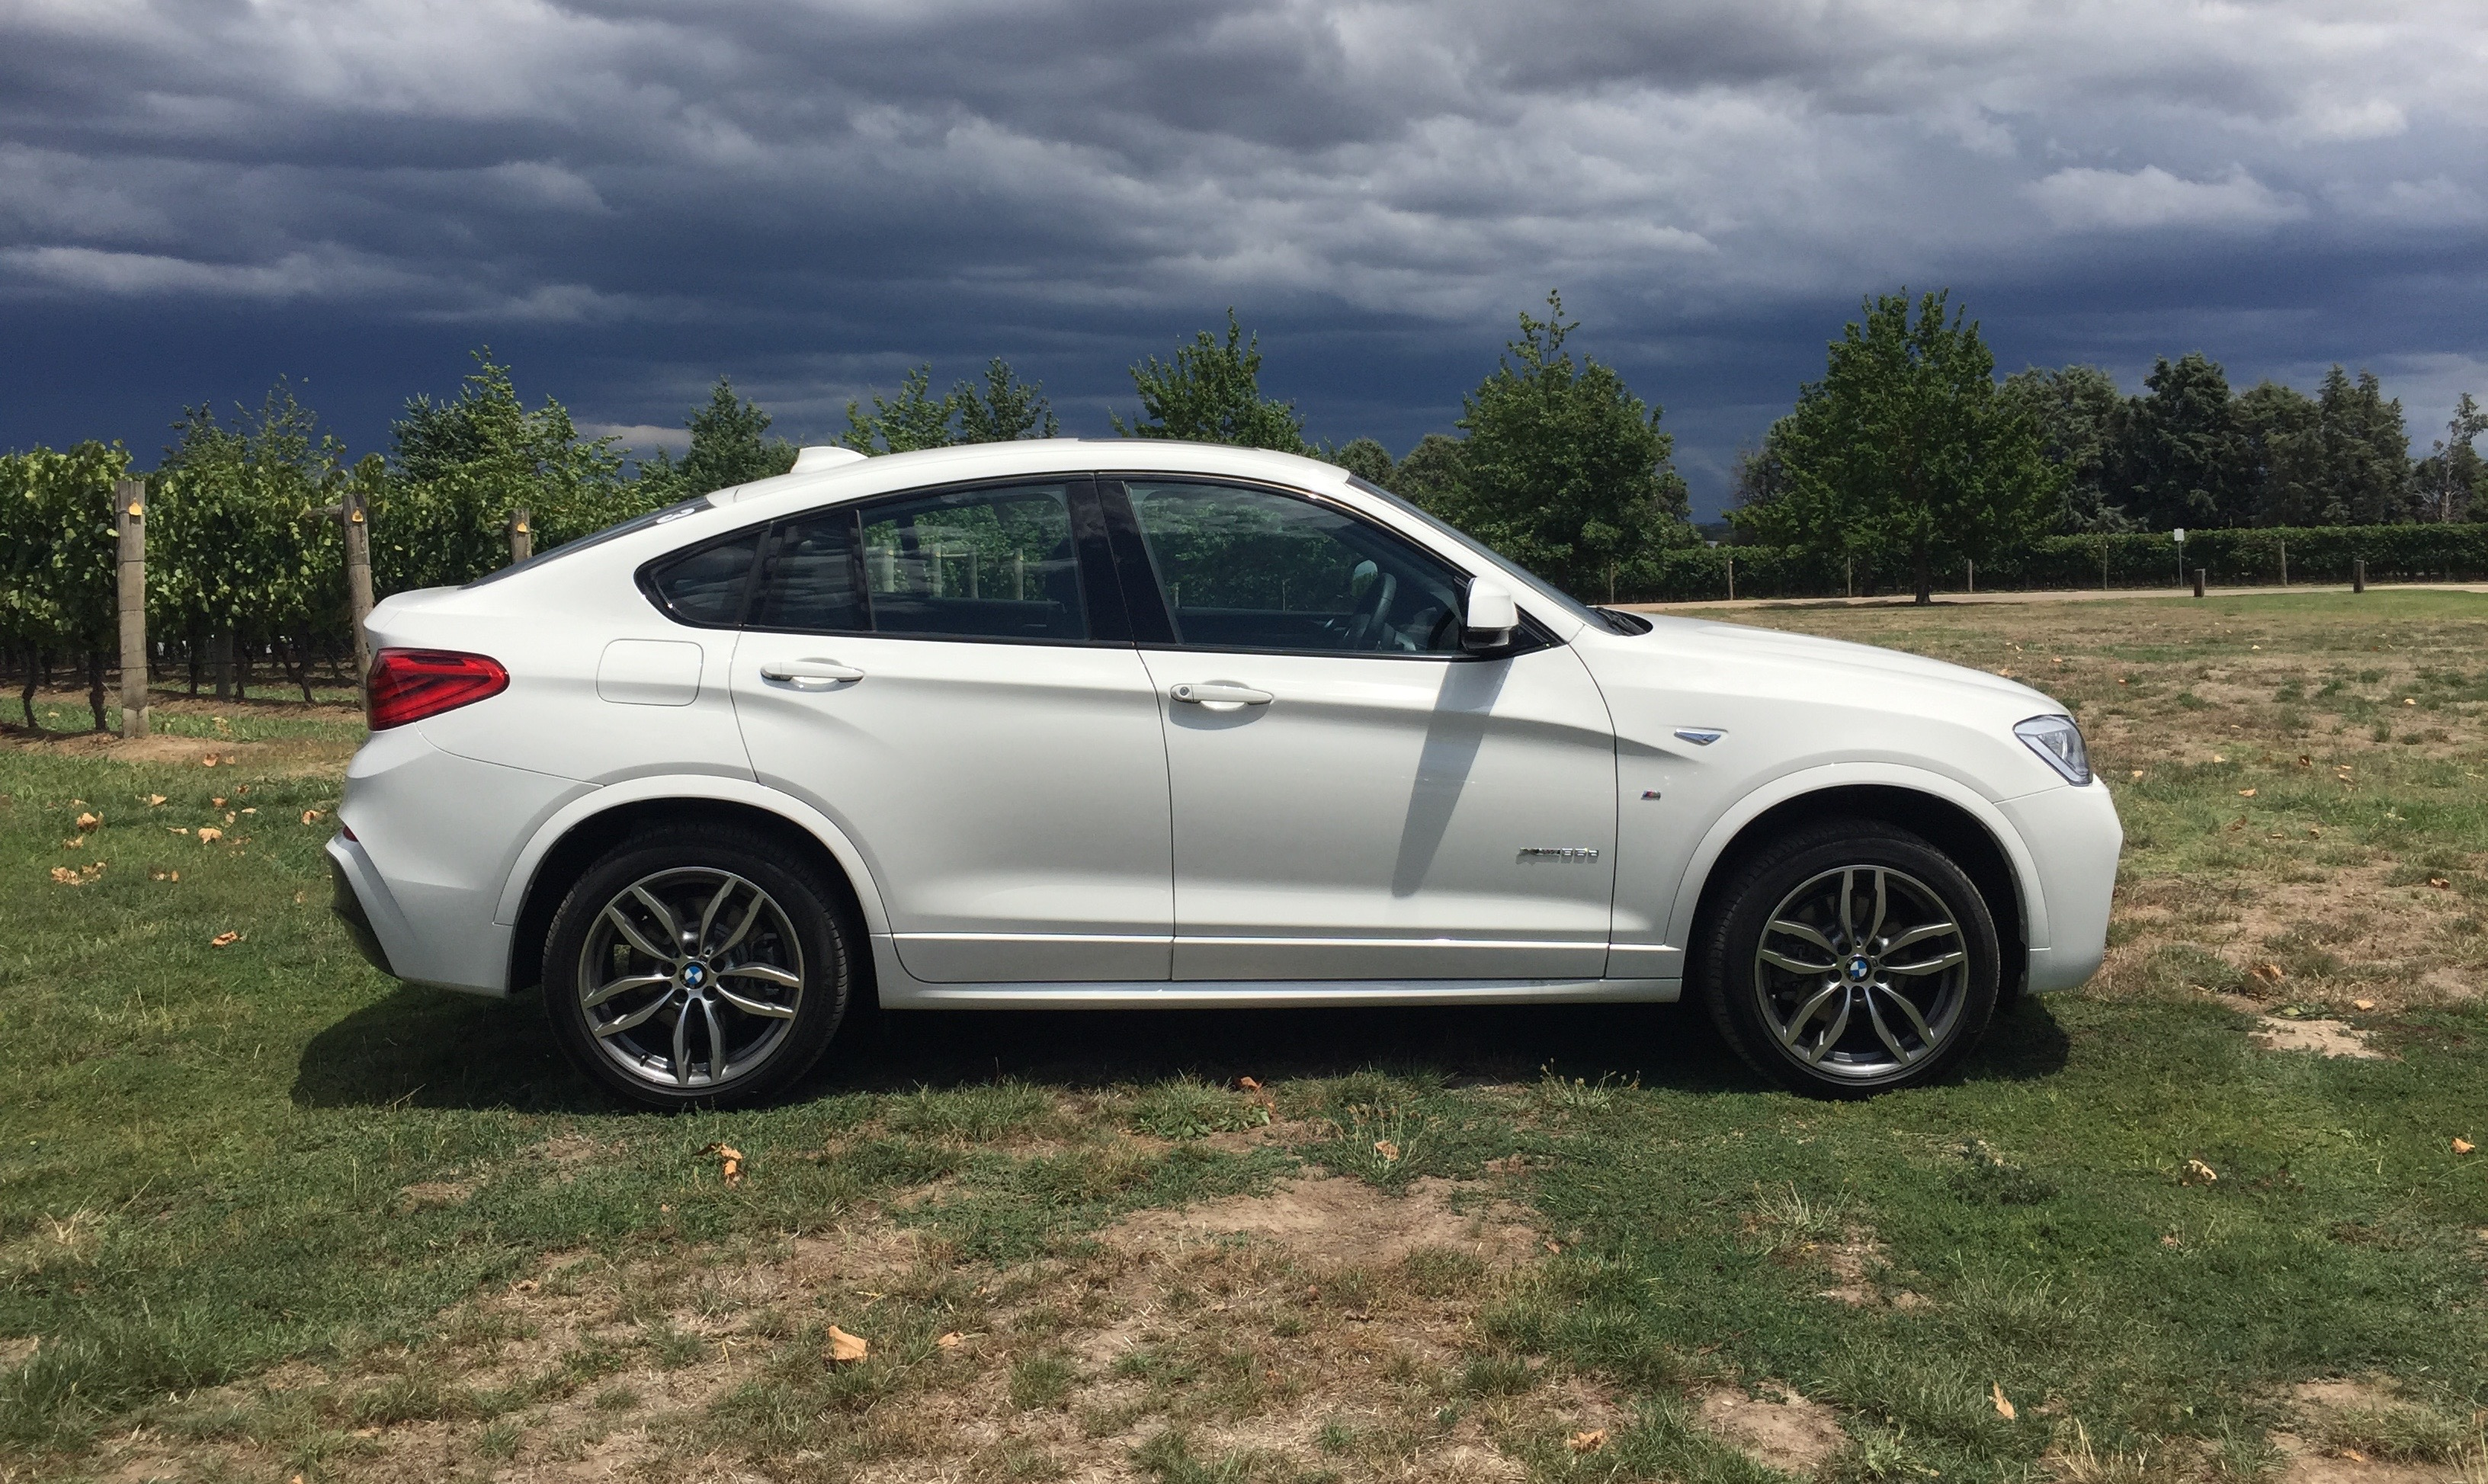 Bmw Xdrive35d Review 2016 Bmw X4 Xdrive35d Review Photos Caradvice Bmw Photo Gallery Bmw Photo